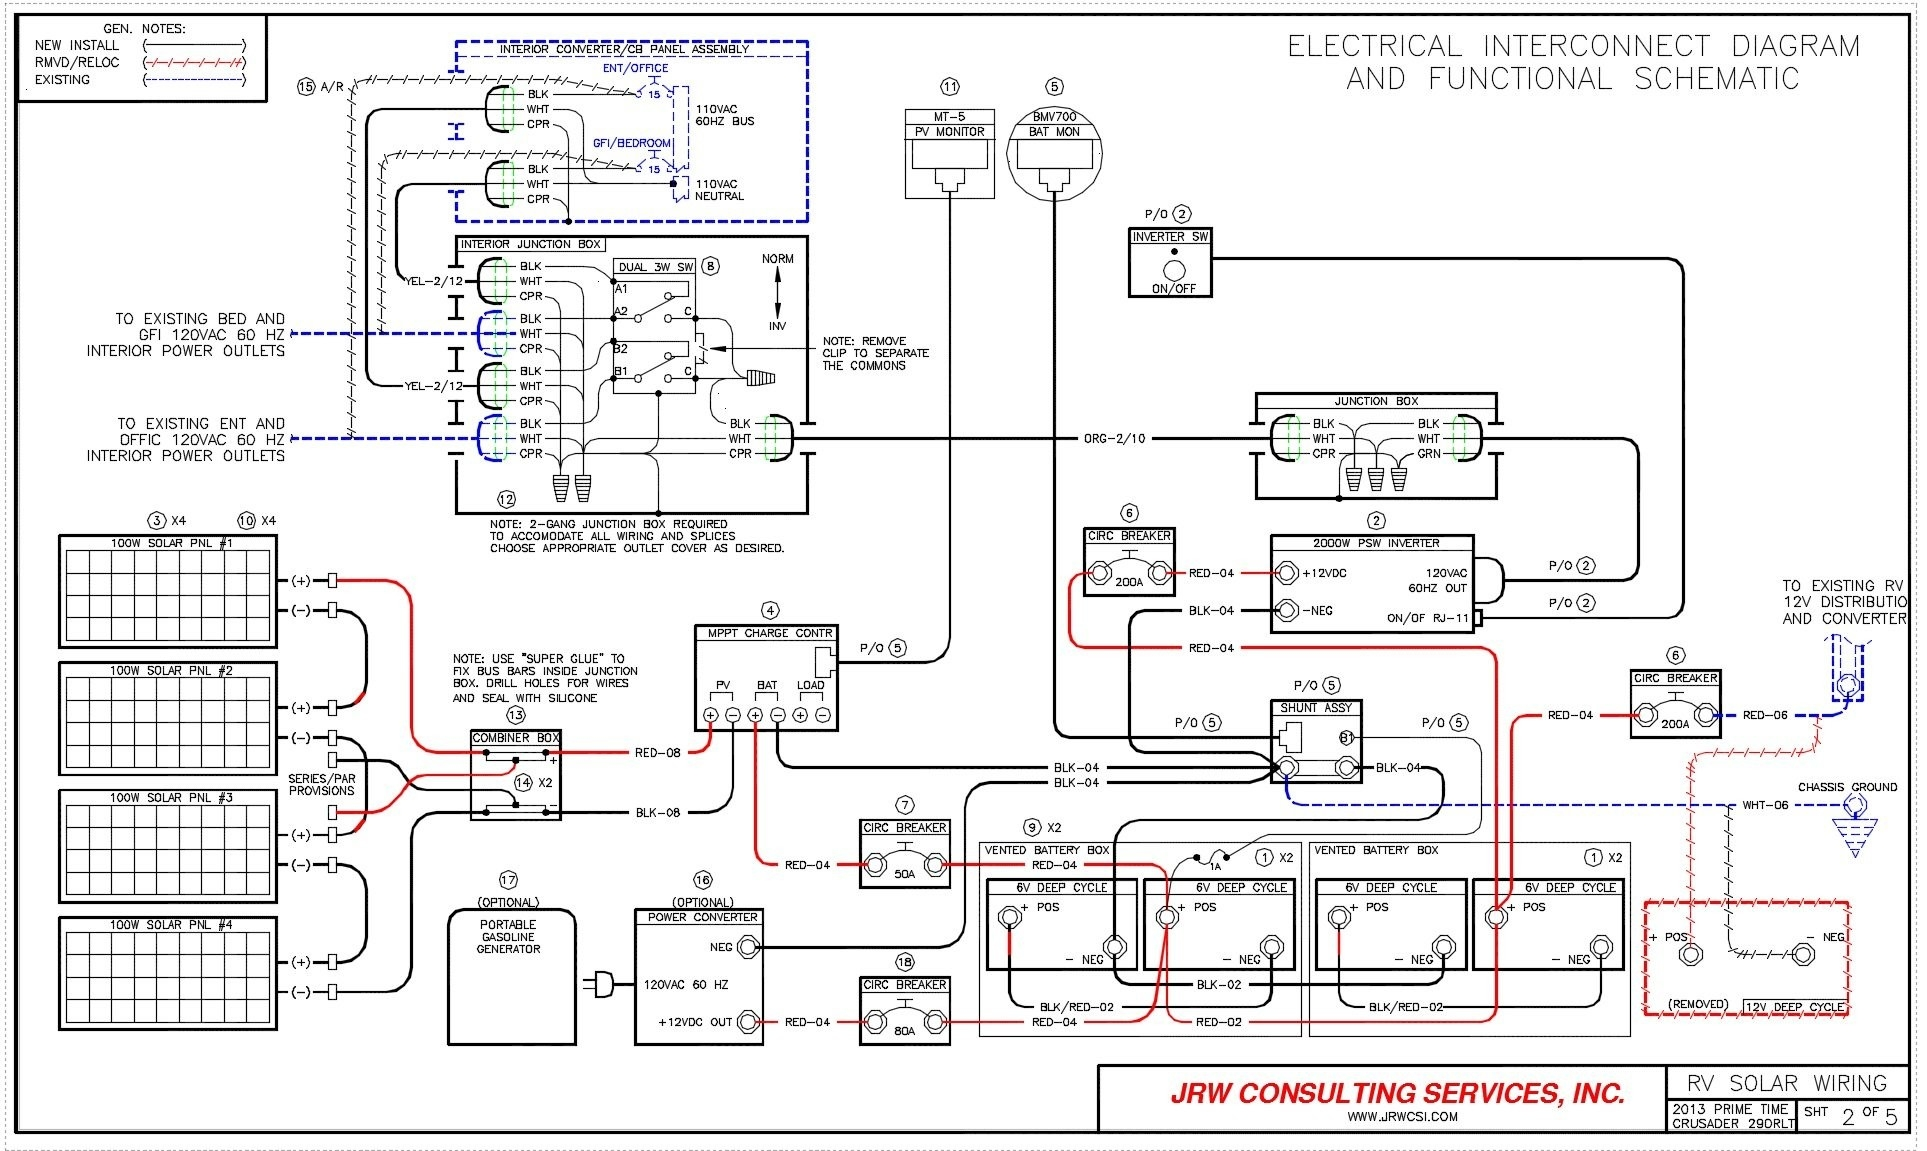 Holiday Rambler Wiring Schematic Wiring Diagram For Rv Park Valid Rv Solar Wiring Diagram Unique Rv Park Wiring Diagram Wiring F on 2001 Chrysler Voyager Fuse Box Location